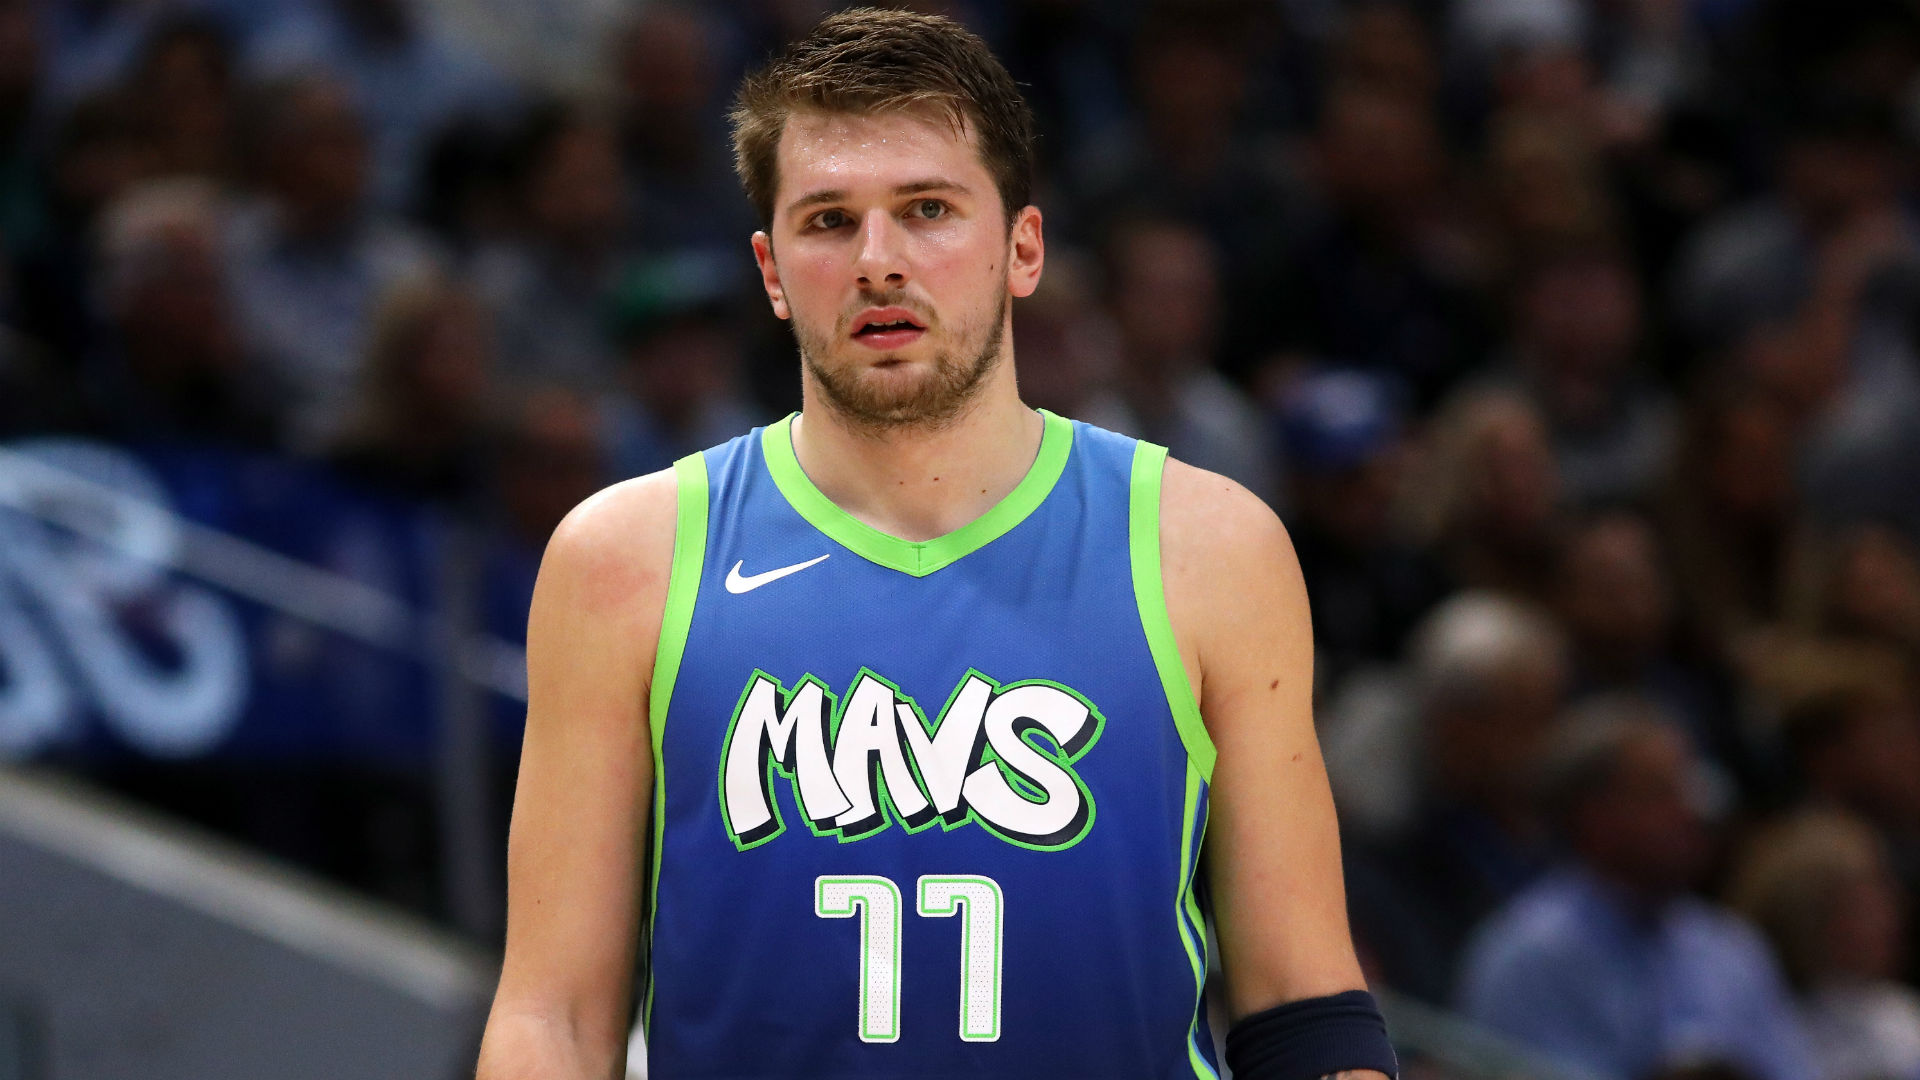 Nobody can be compared to Michael Jordan, according to Luka Doncic, who broke a 30-year record against the Sacramento Kings.